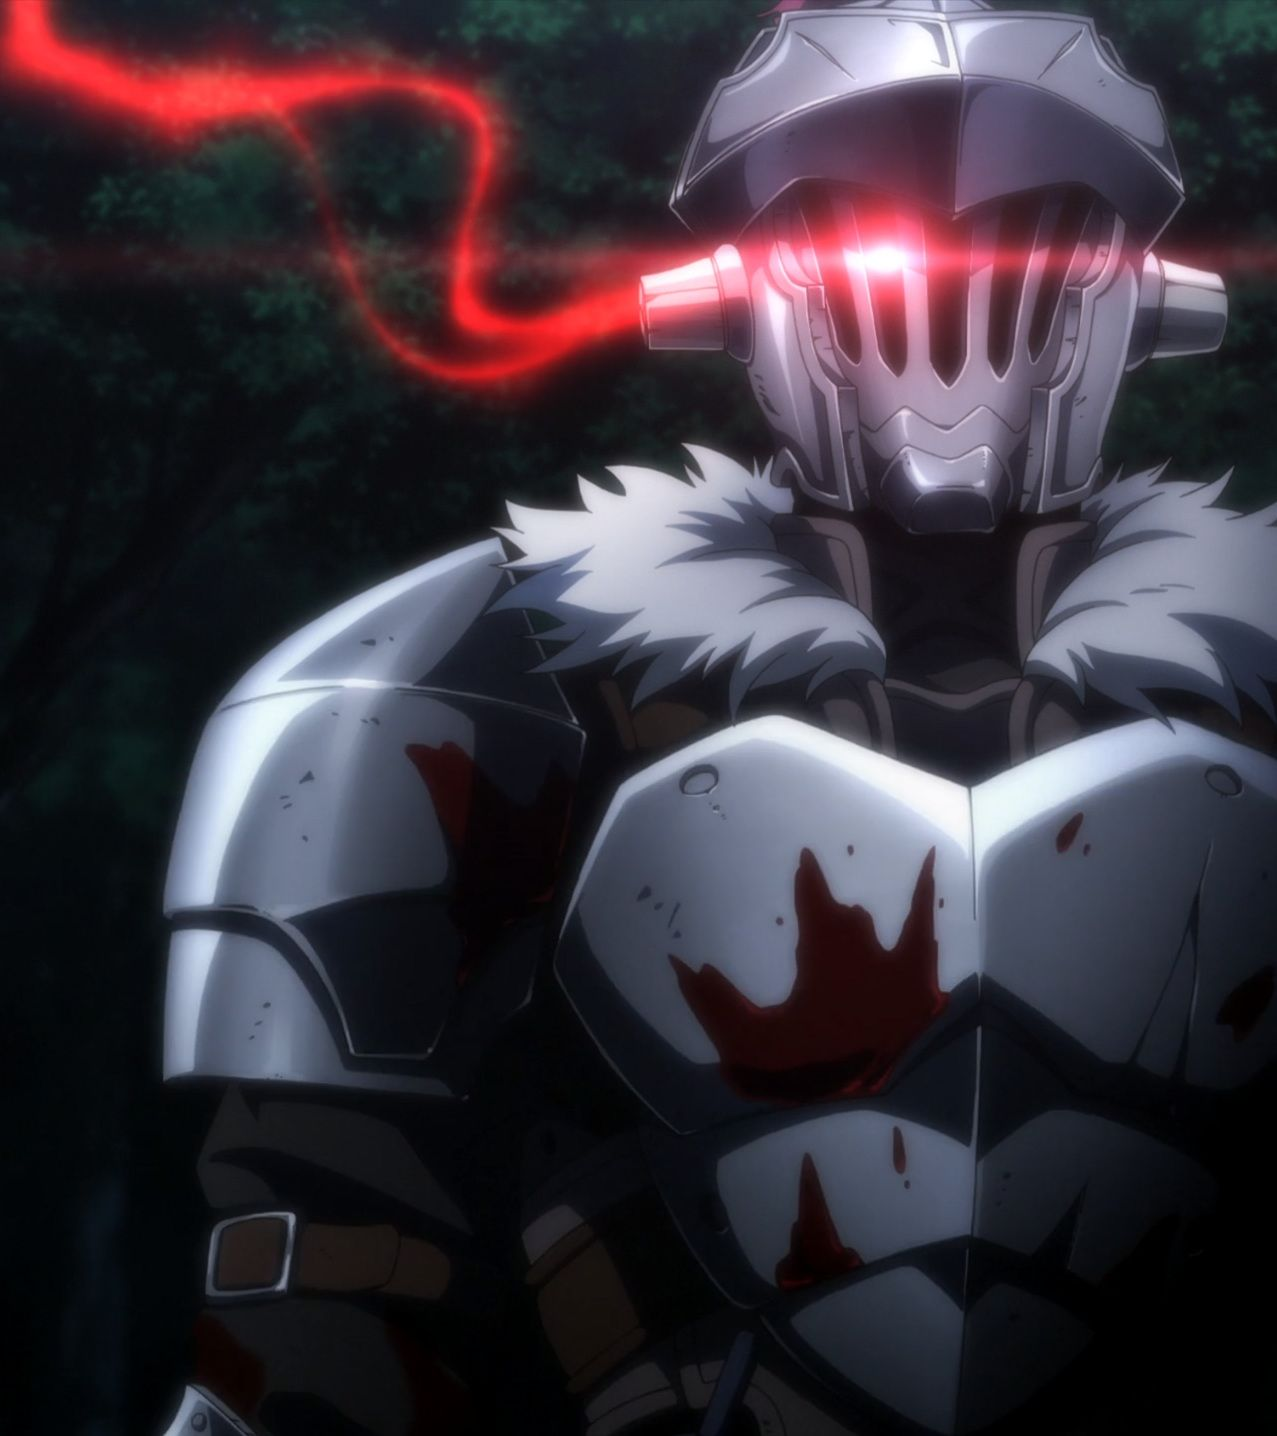 The finale has arrived. Anime Solution's final review for